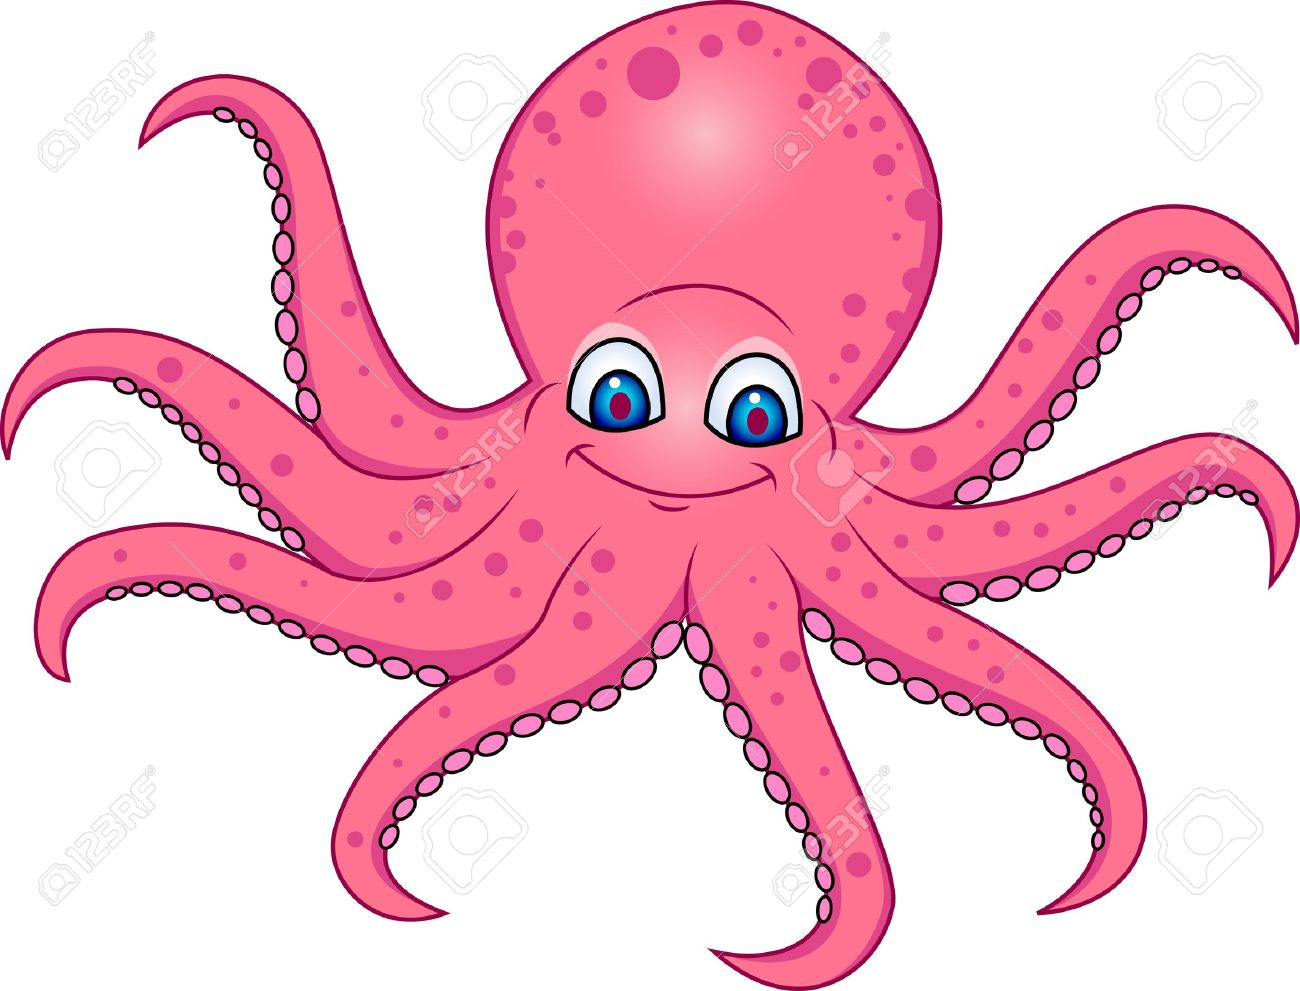 Octopus clipart #8, Download drawings